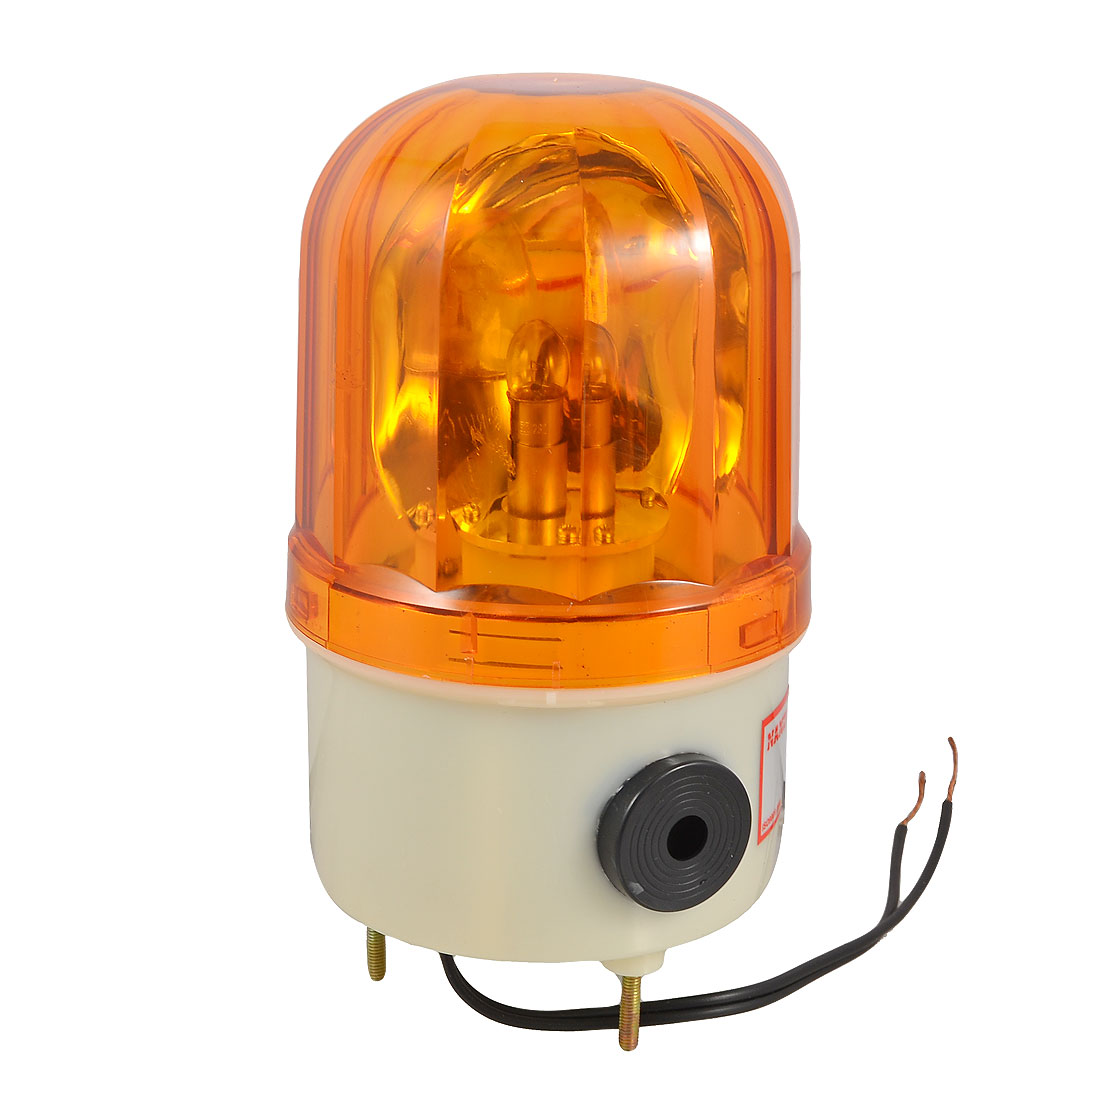 Unique Bargains 10W AC 110V Industrial Yellow Rotary Light Warning Lamp w Buzzer Siren